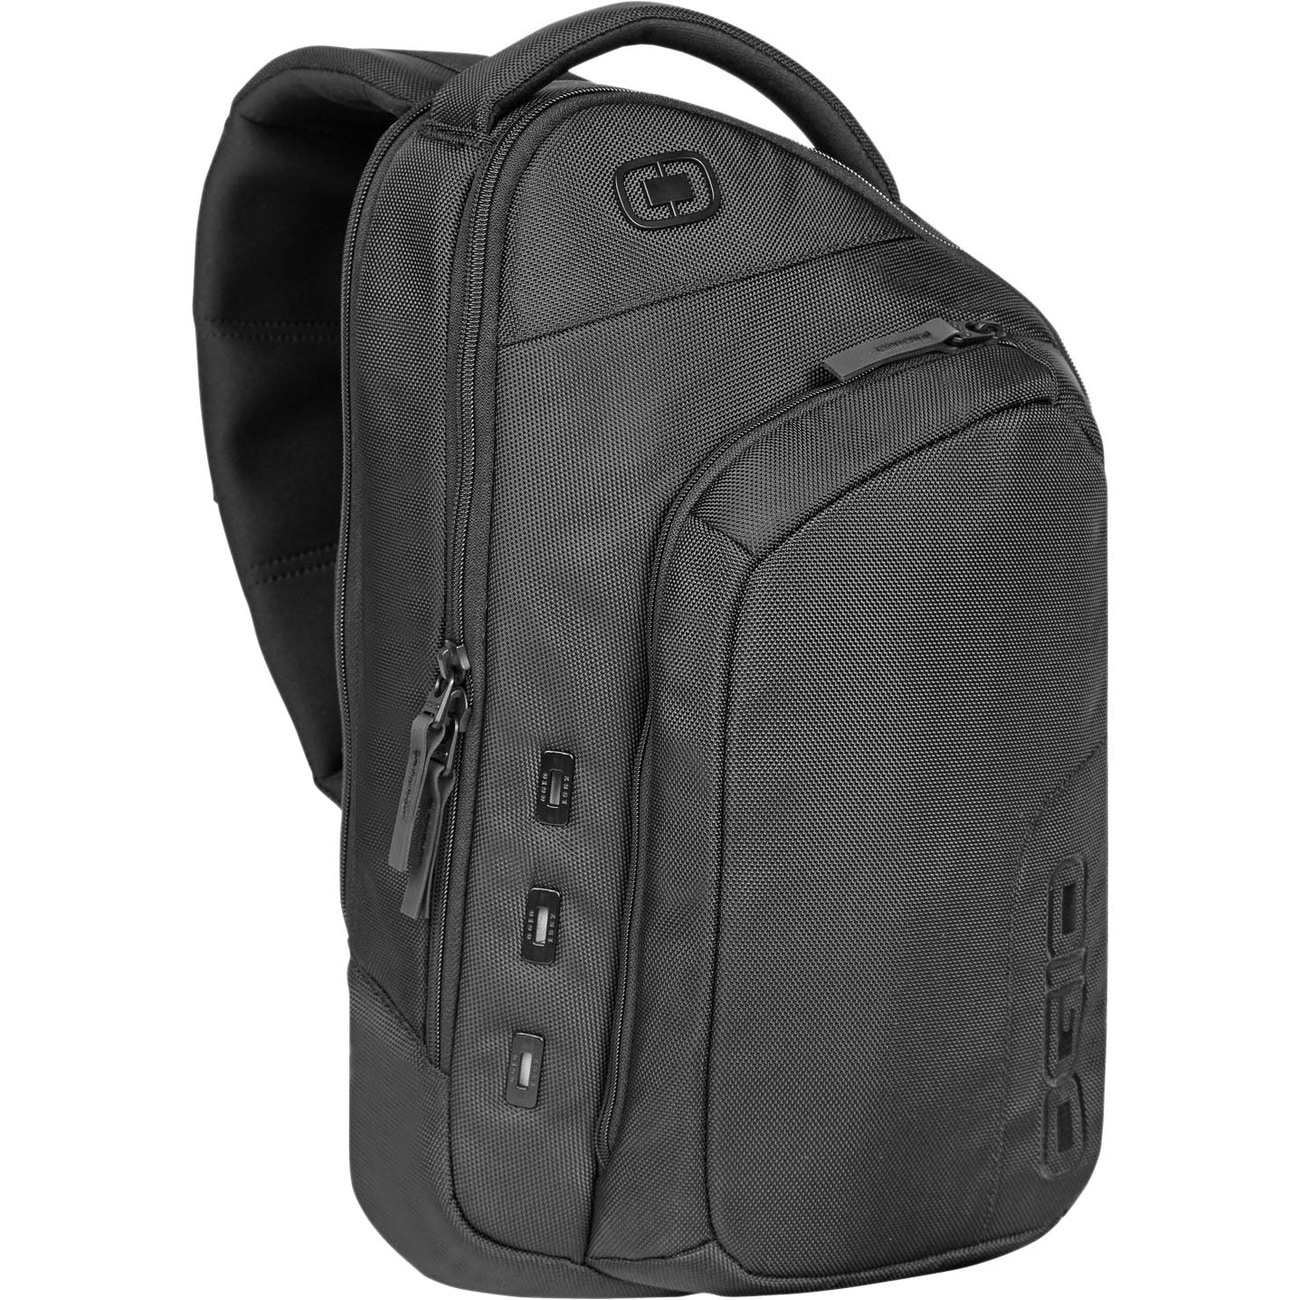 "Ogio NEWT II MONO Carrying Case (Backpack) for 15"" Notebook - Black"